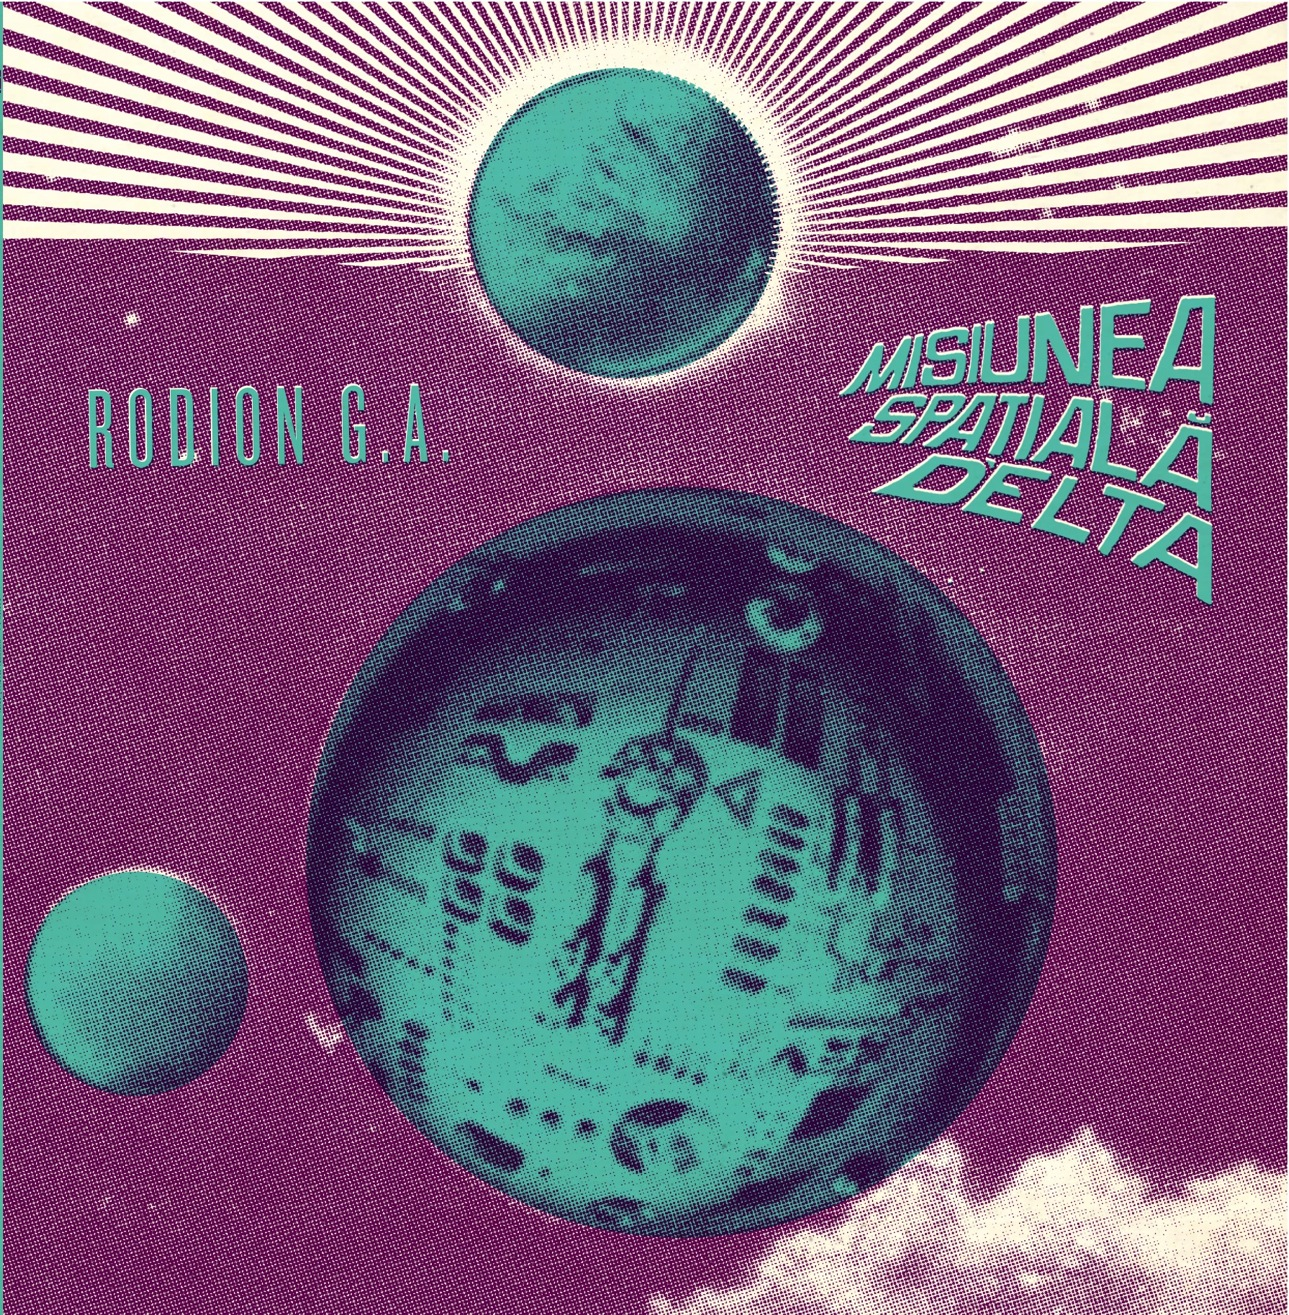 Rodion G.A. - Delta Space Mission